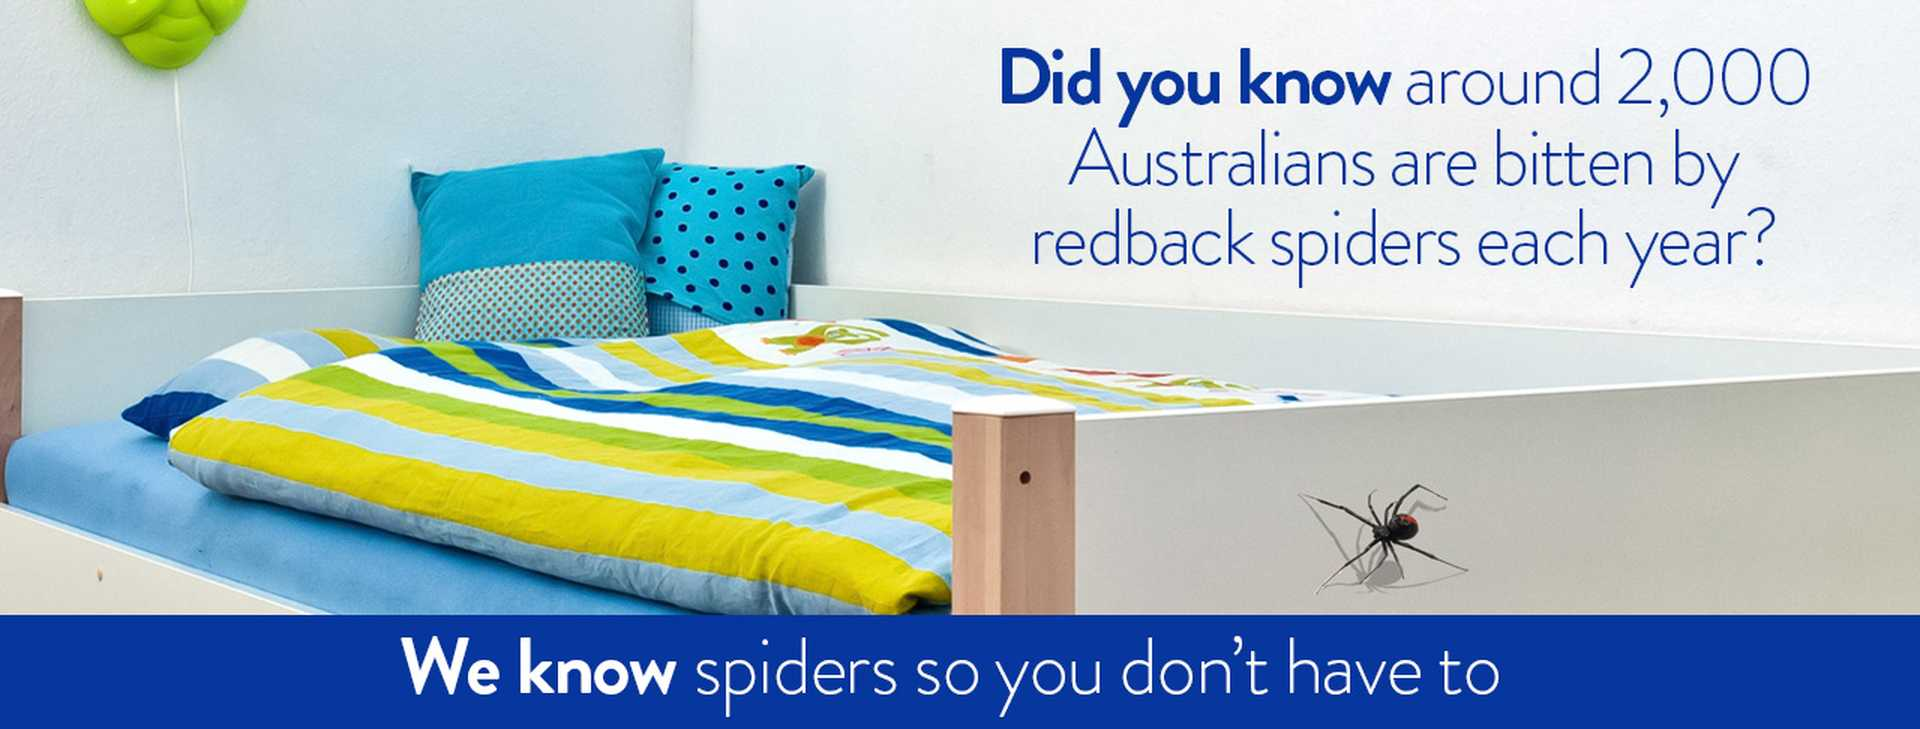 We know spiders so you don't have to.